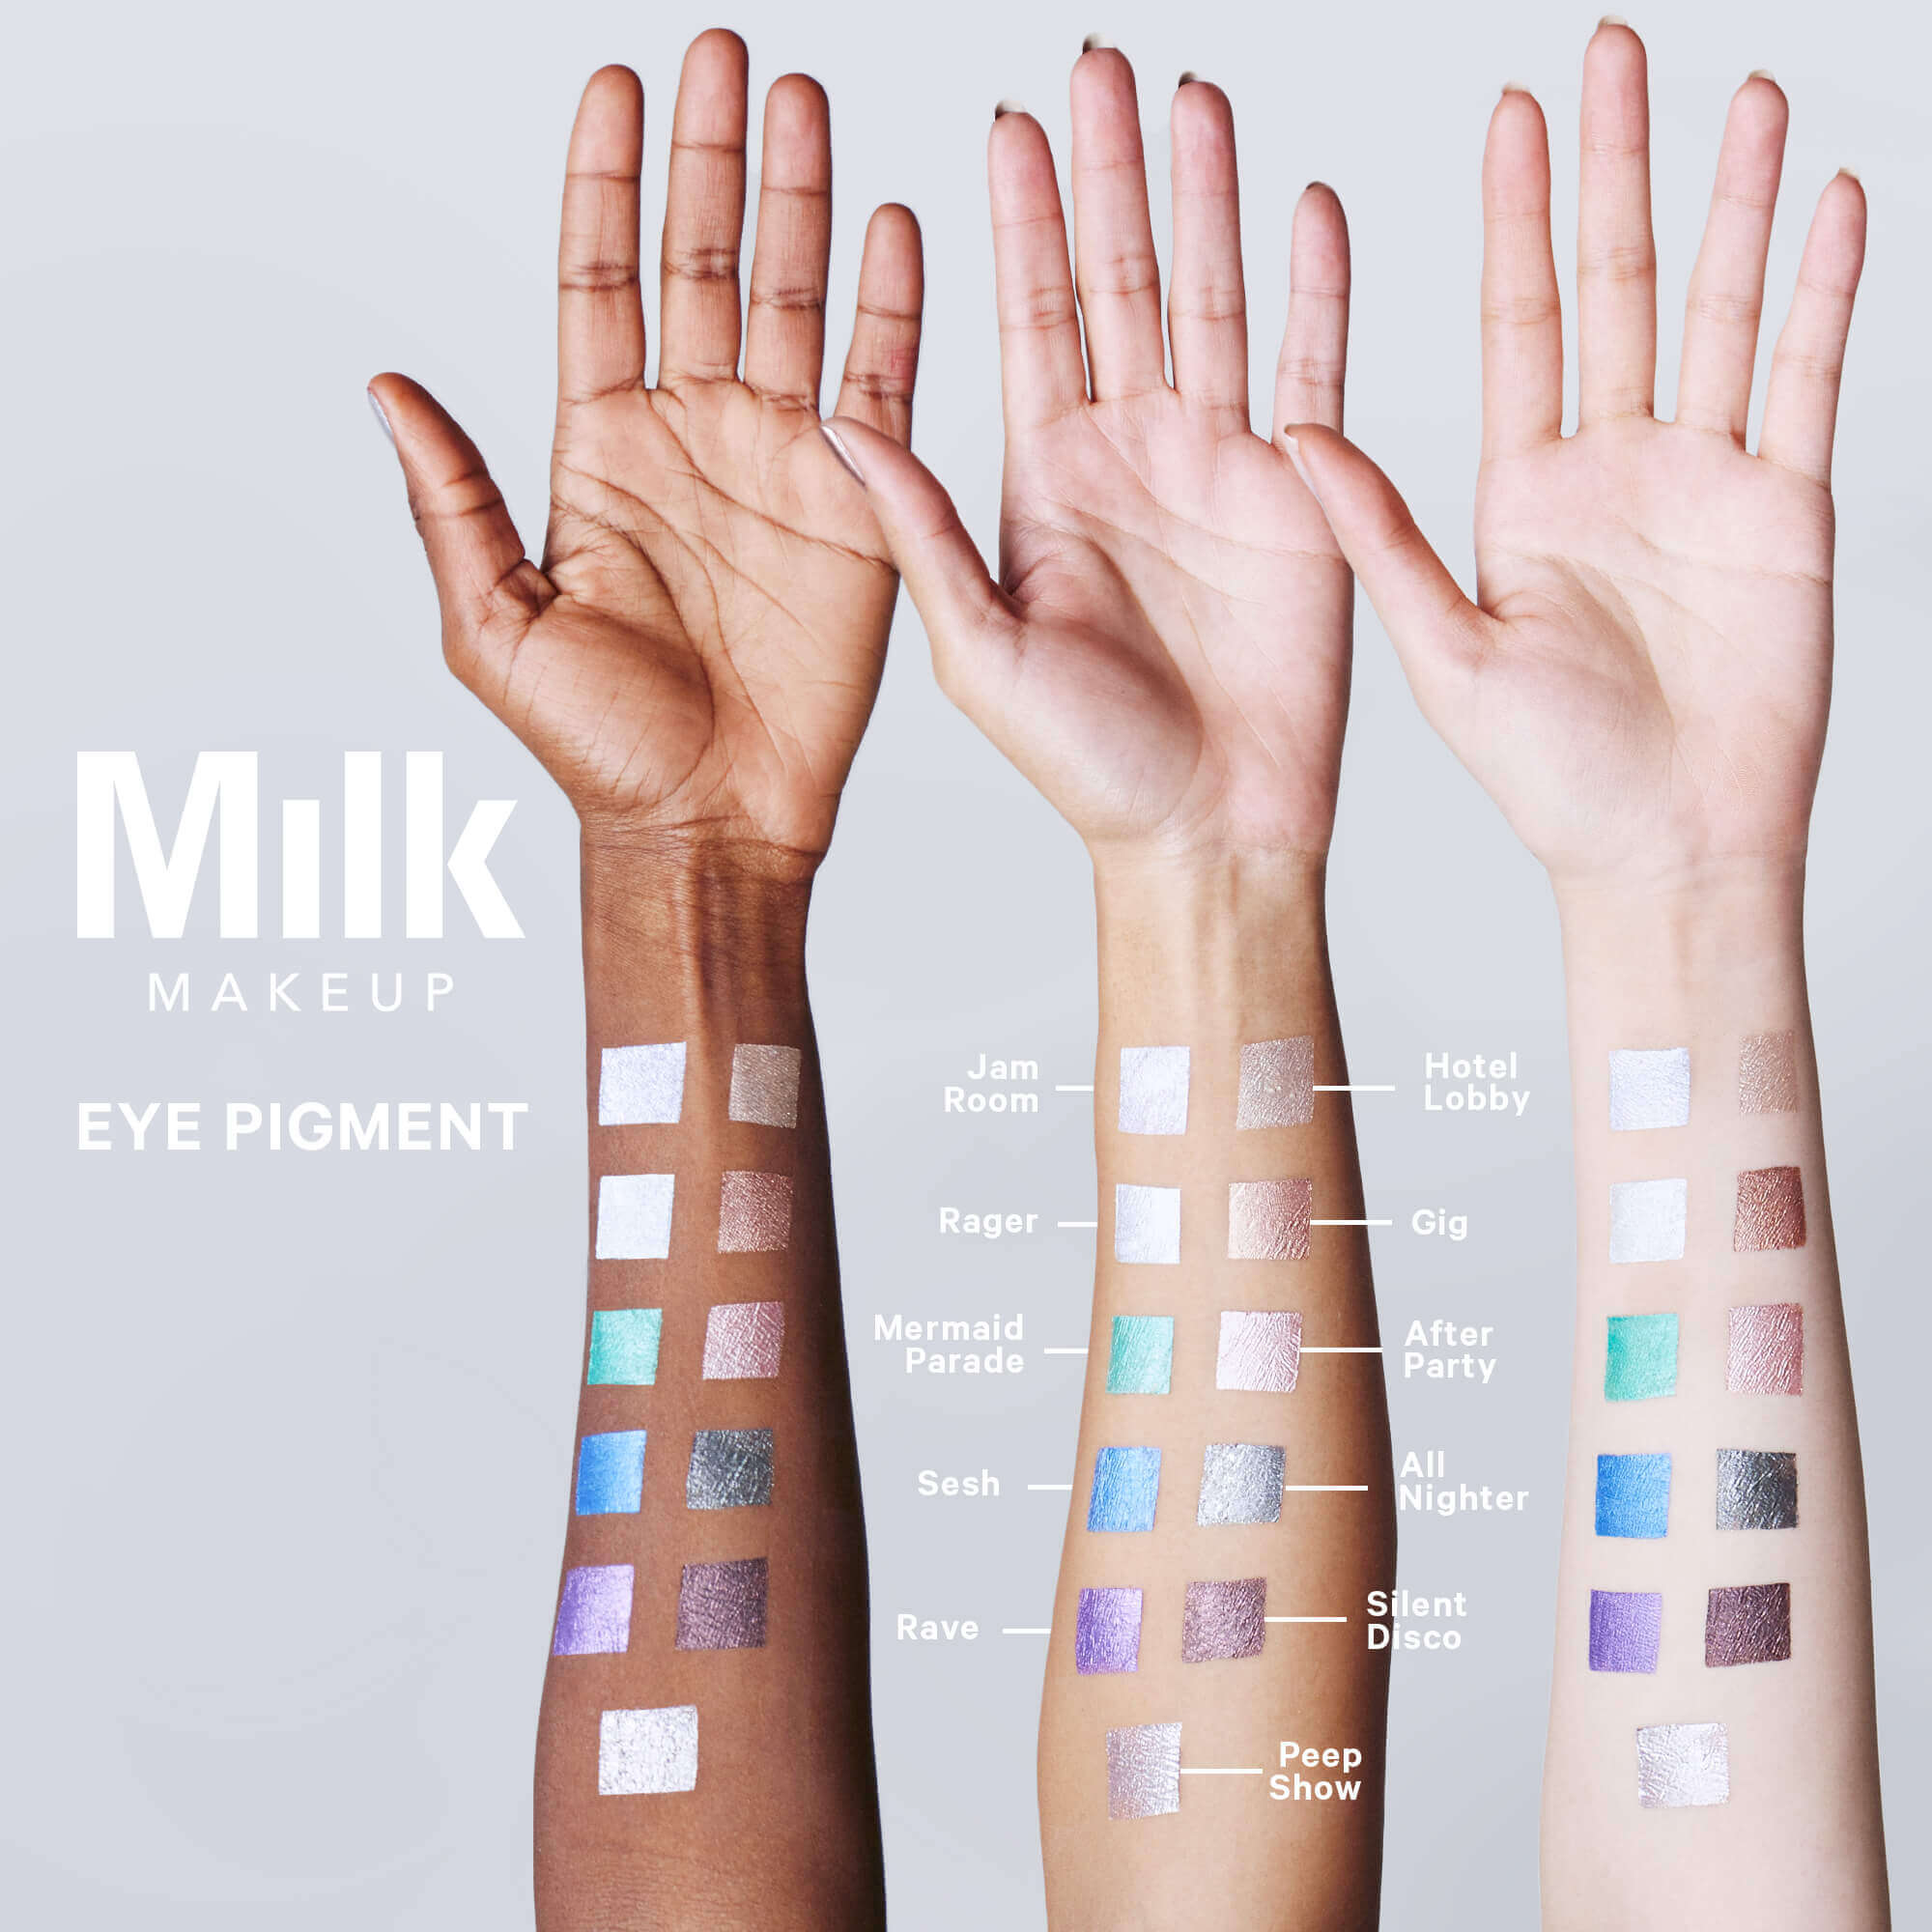 Milk Makeup Added 11 New Shades To Their Beloved Eye